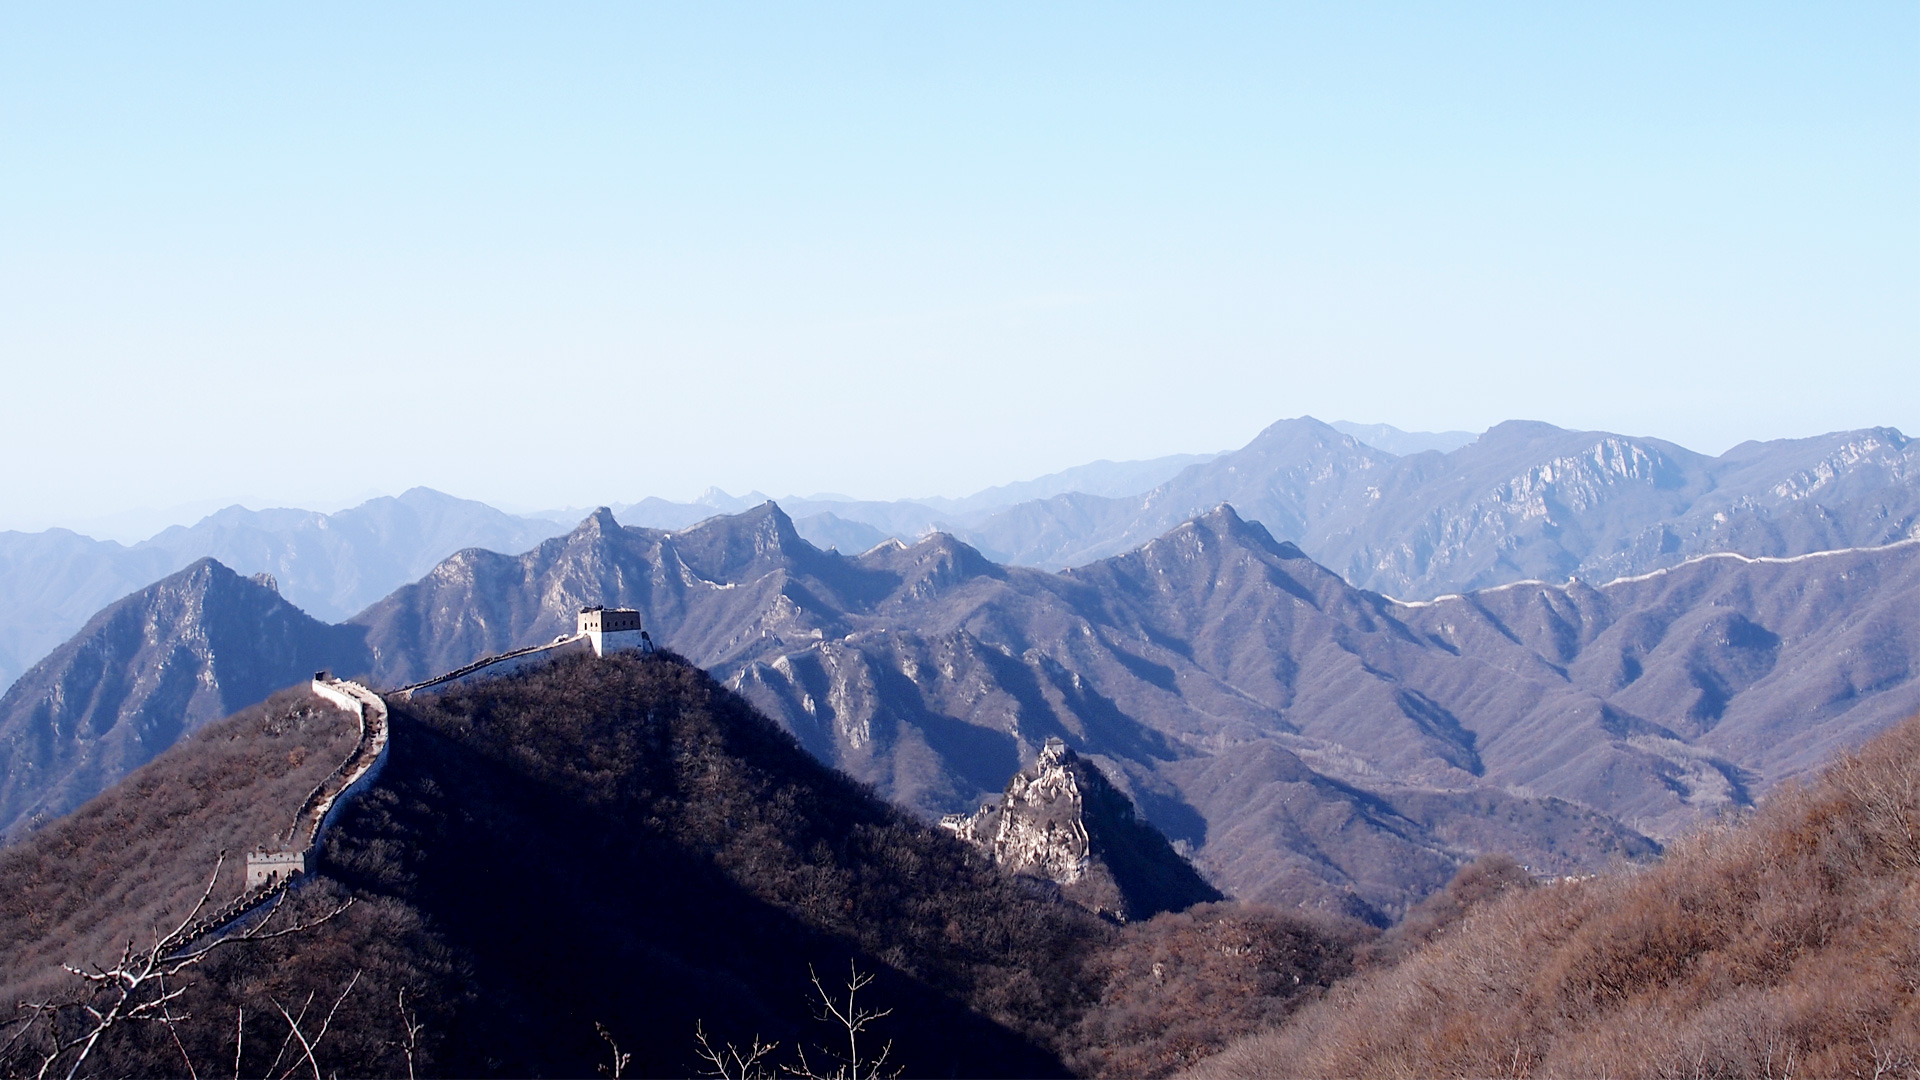 Hiking the Great Wall of China from Jiankou to Mutianyu